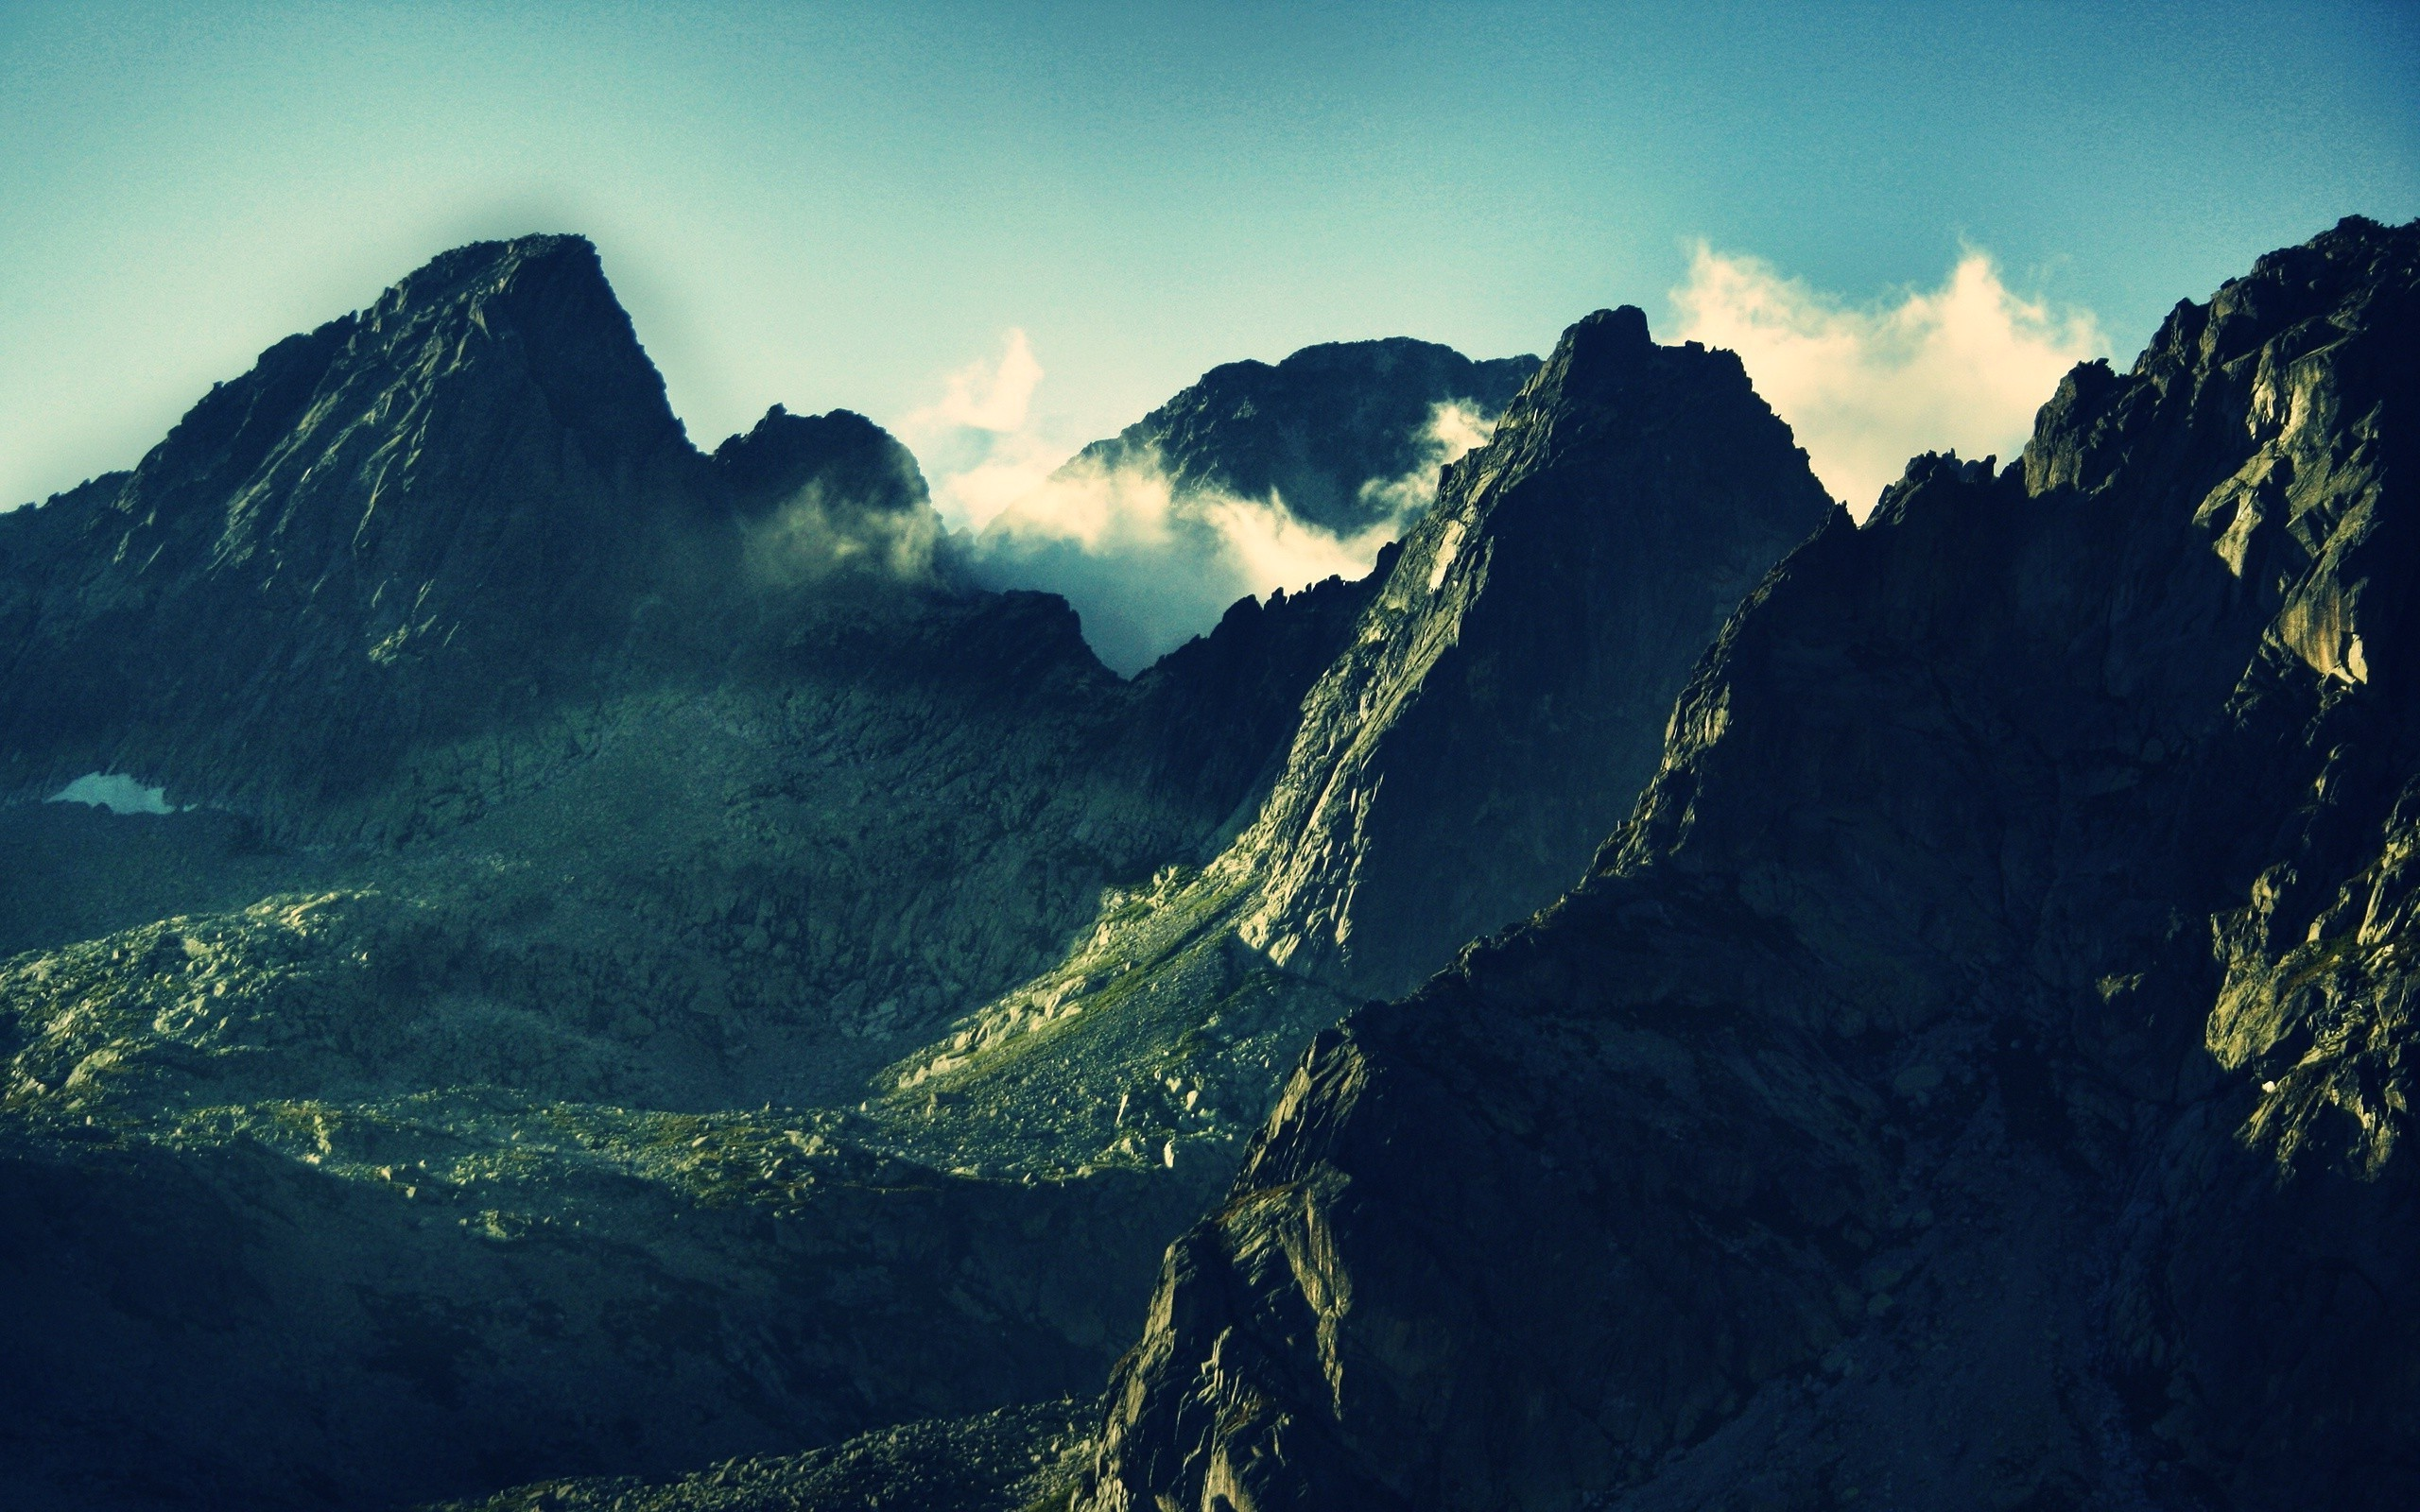 breath-taking-mountains-nature-hd-wallpaper-2560×1600-6262